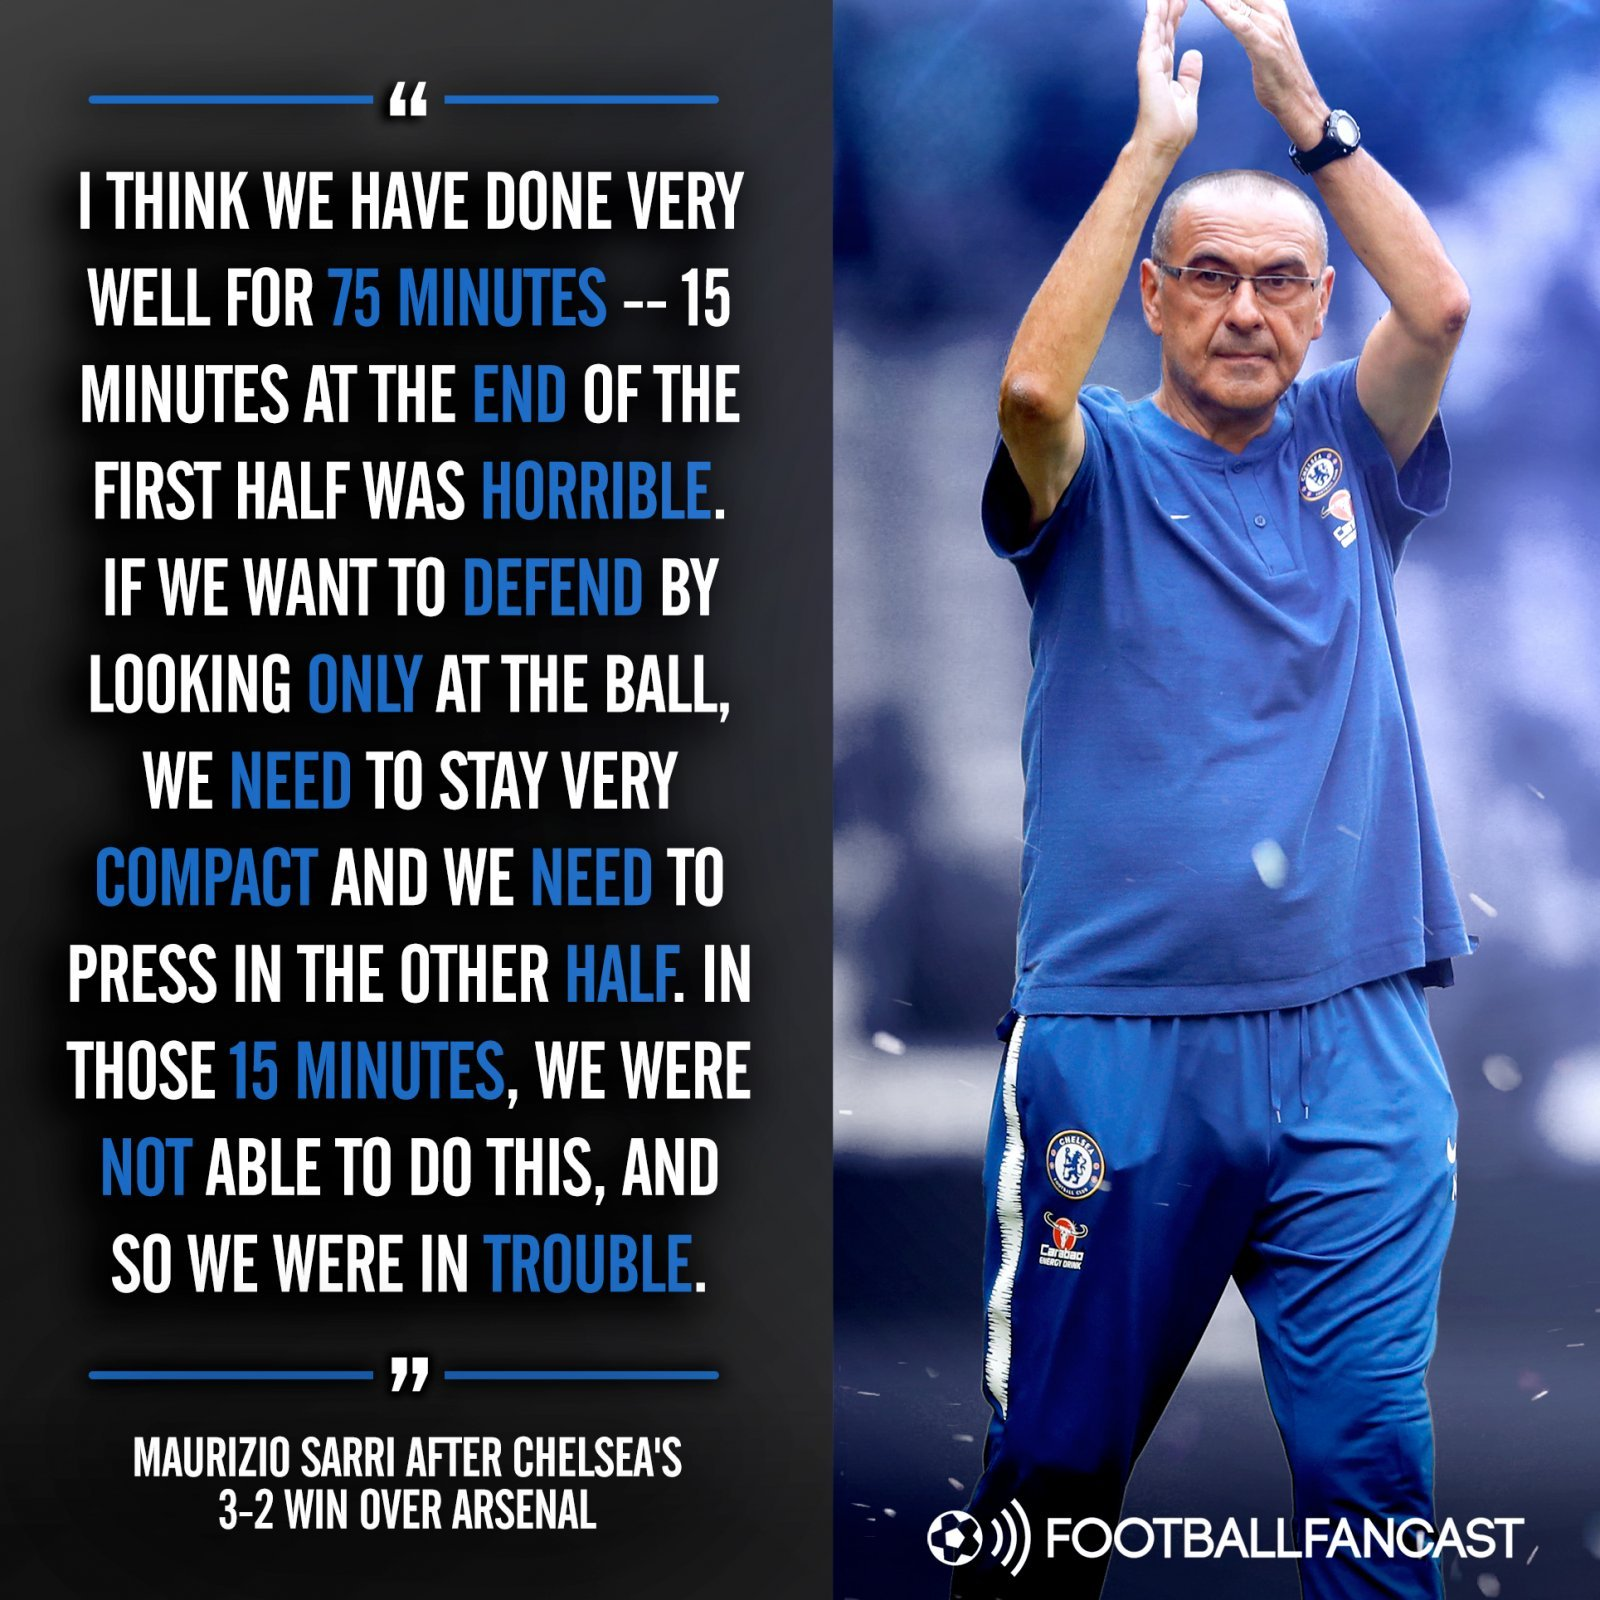 Maurizio Sarri after Chelsea's 3-2 win over Arsenal